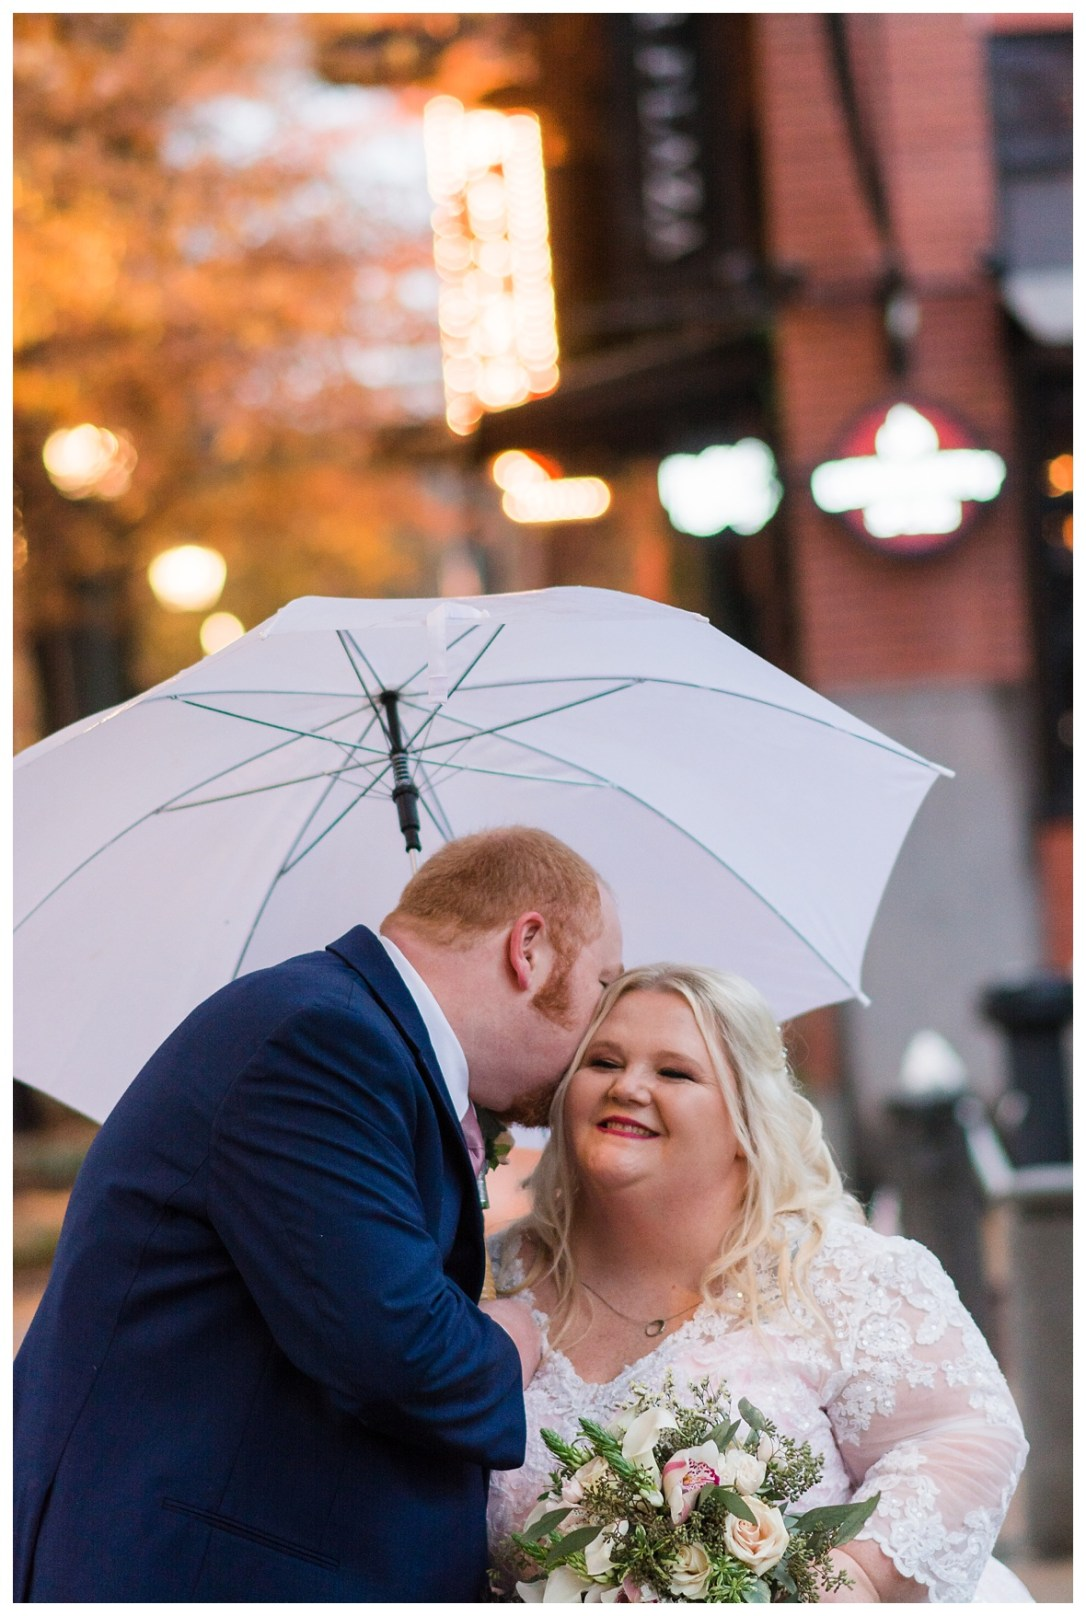 white umbrella for wedding